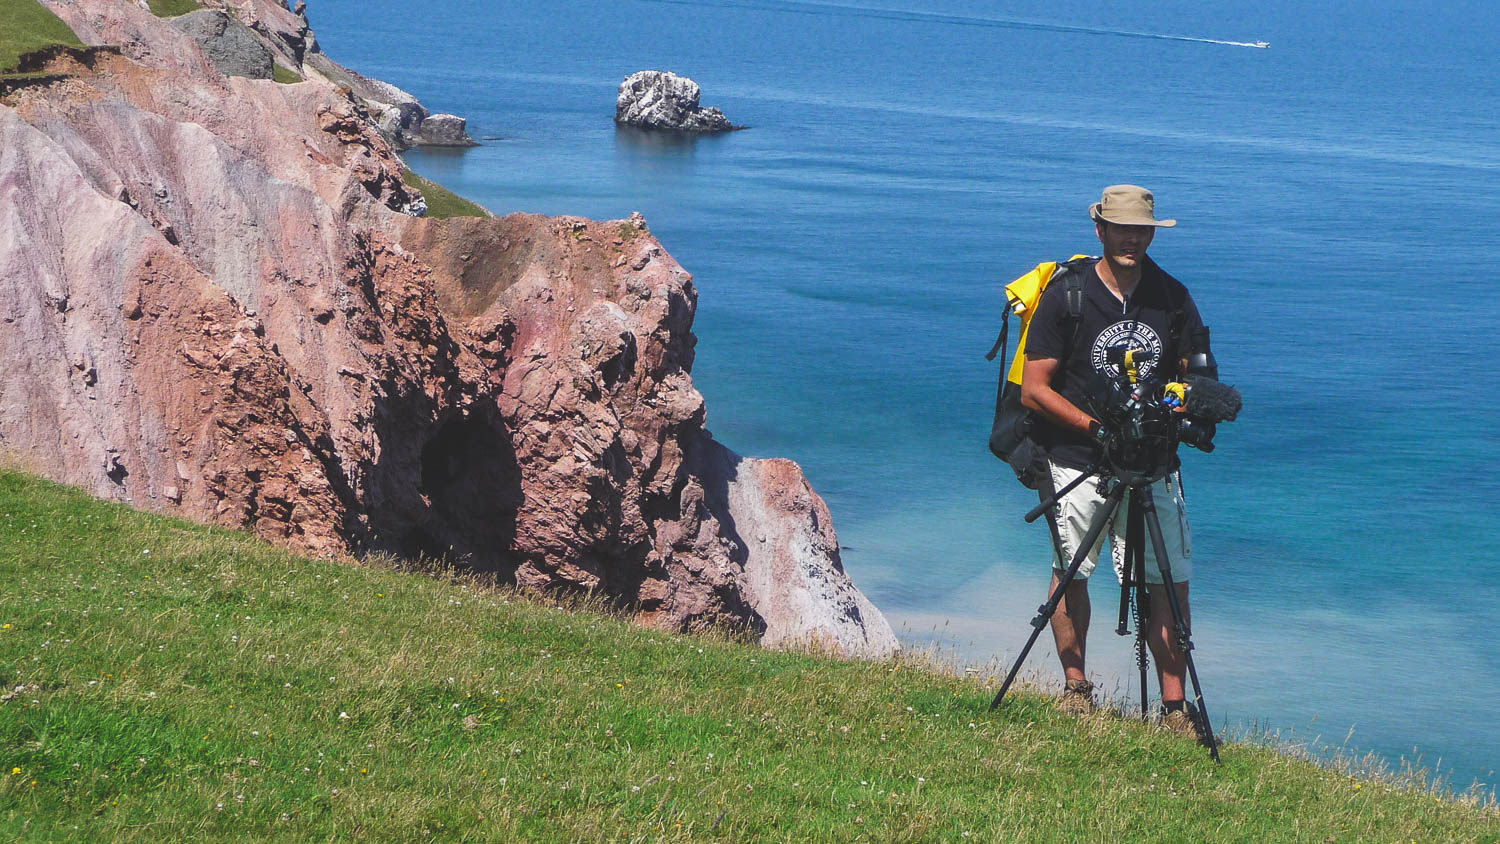 During the production of the TV Show the Great Trails Season 1, the director of photography and director Richard Duquette during on top of a cliff in the Magdalena Island, Quebec, Canada.